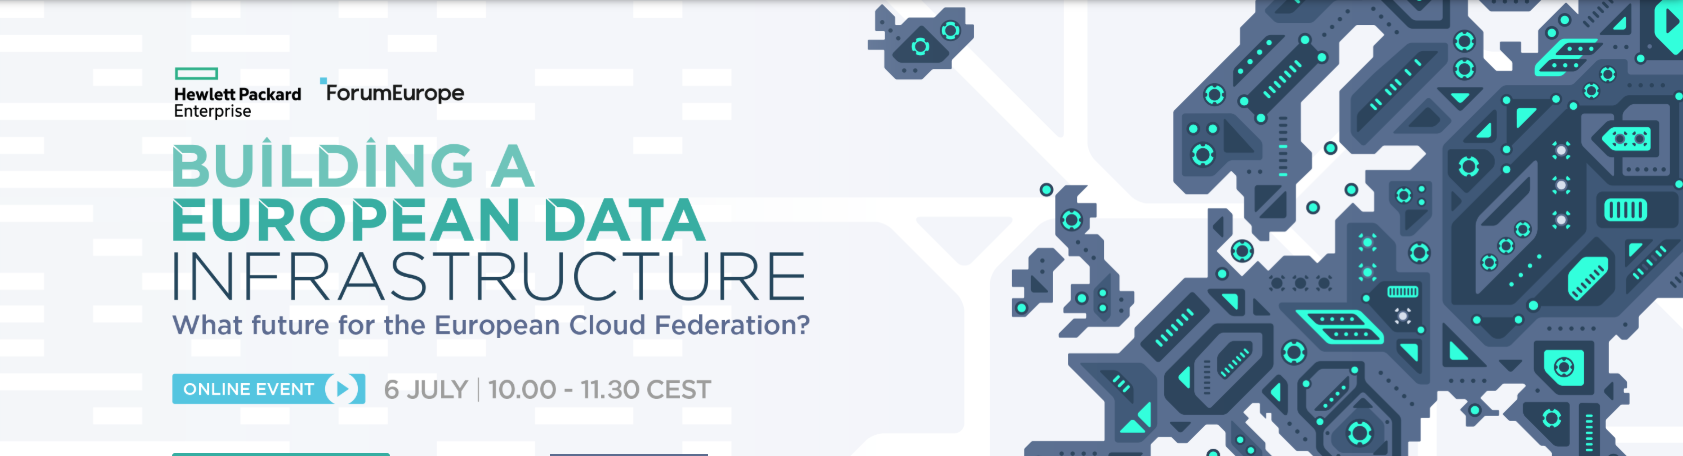 Building a European Data Infrastructure  What future for the European Cloud Federation?